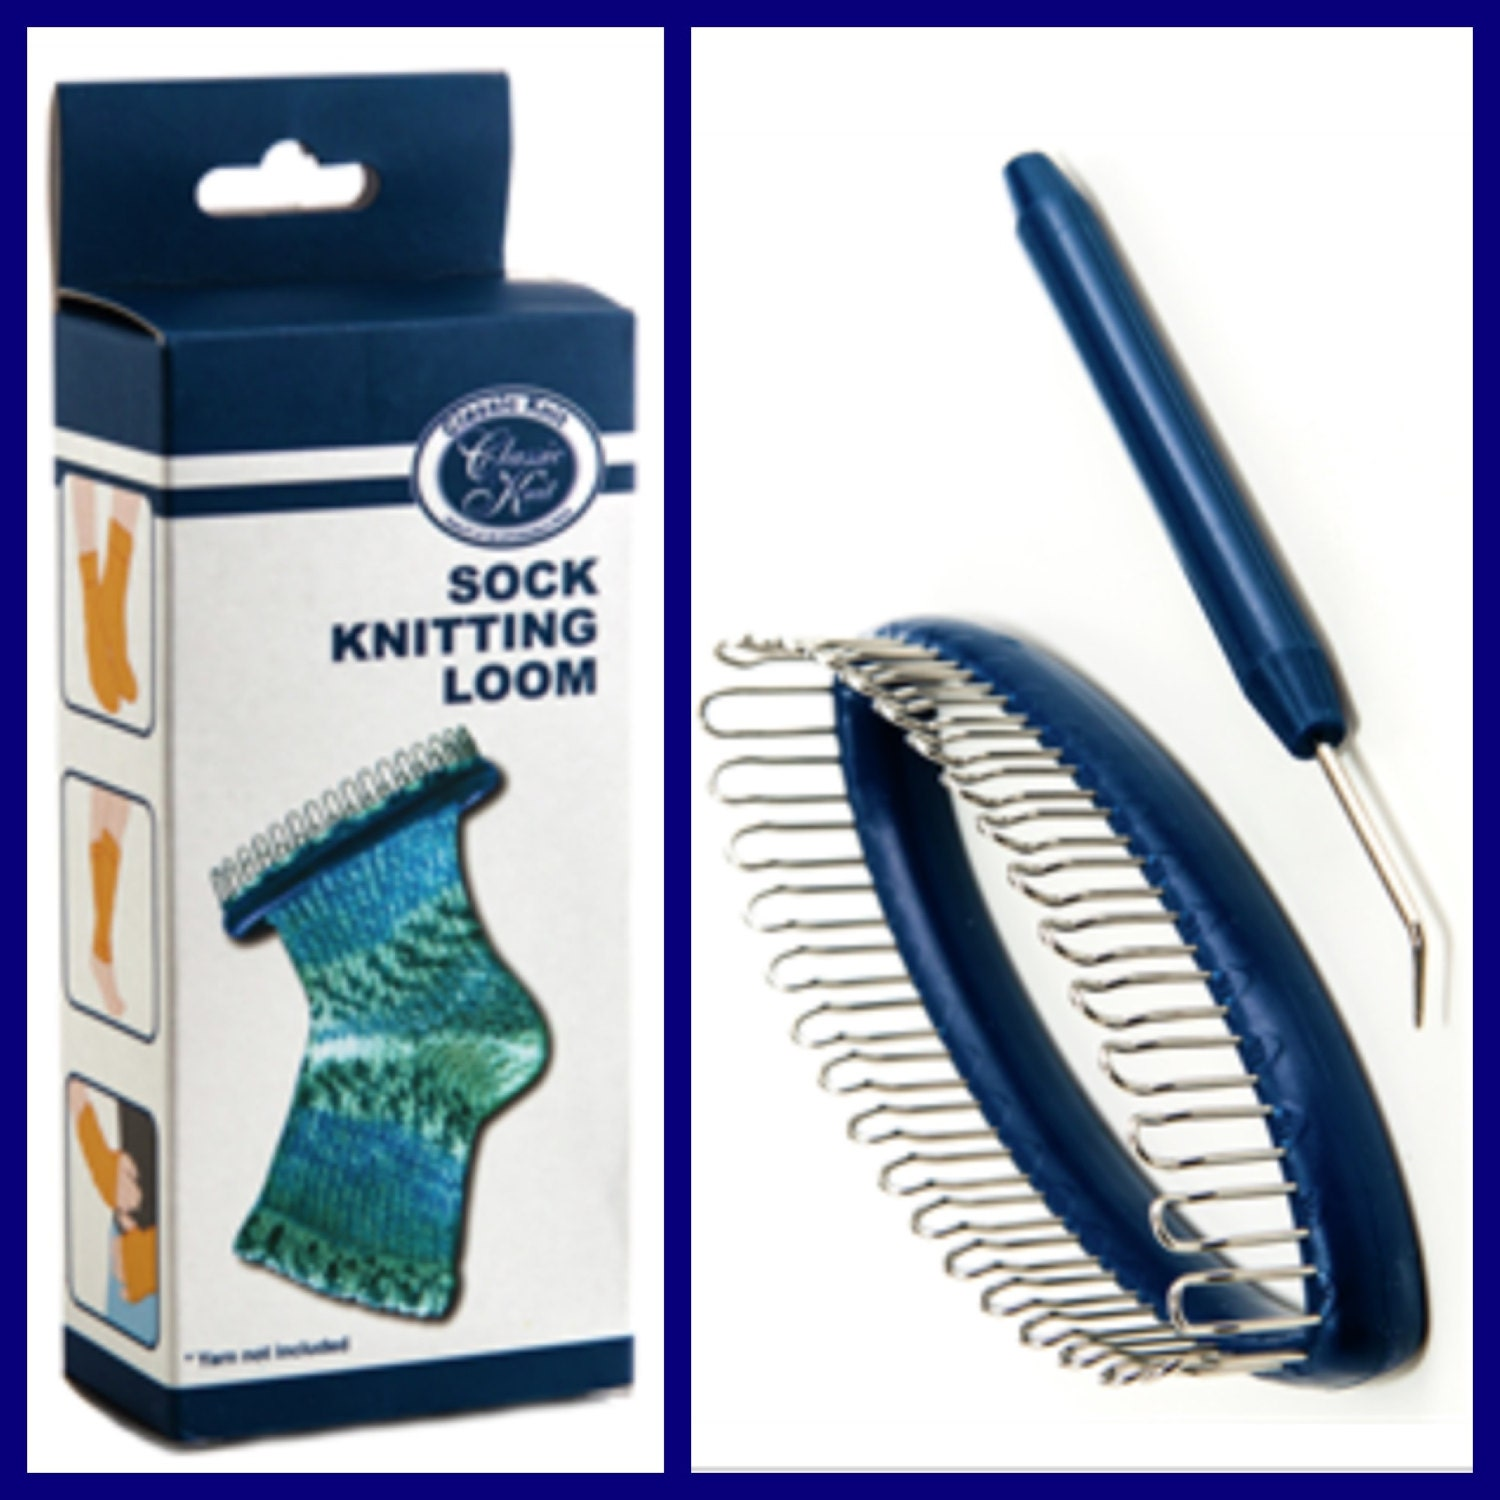 Knitting Loom Kit : Sock knitting loom great gift learn to knit kit with yarn